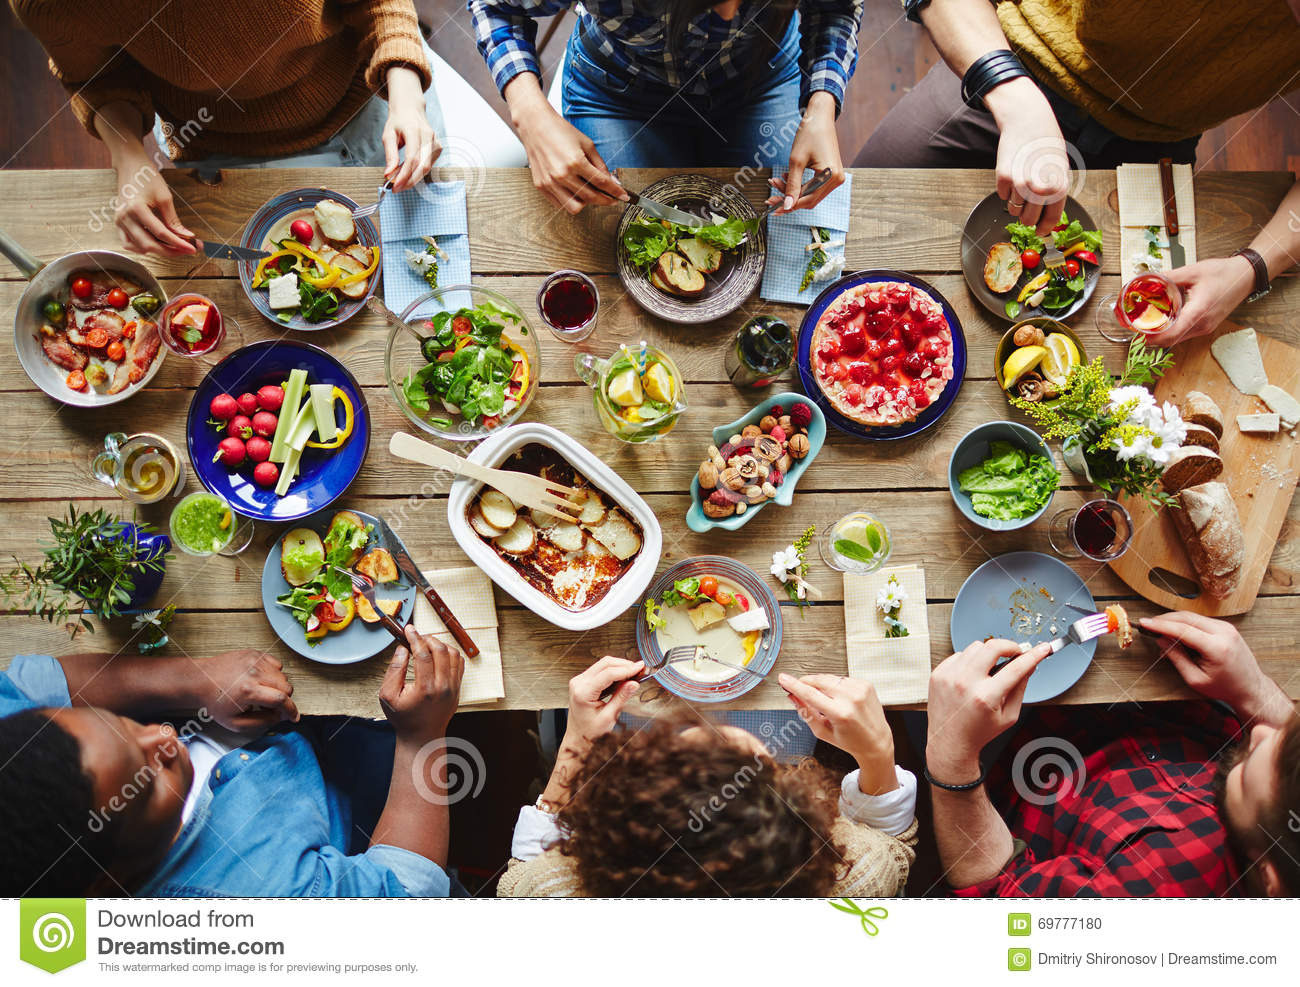 Friends Dining Stock Photo Image 69777180 : friends dining group young people eating dinner 69777180 from www.dreamstime.com size 1300 x 987 jpeg 277kB